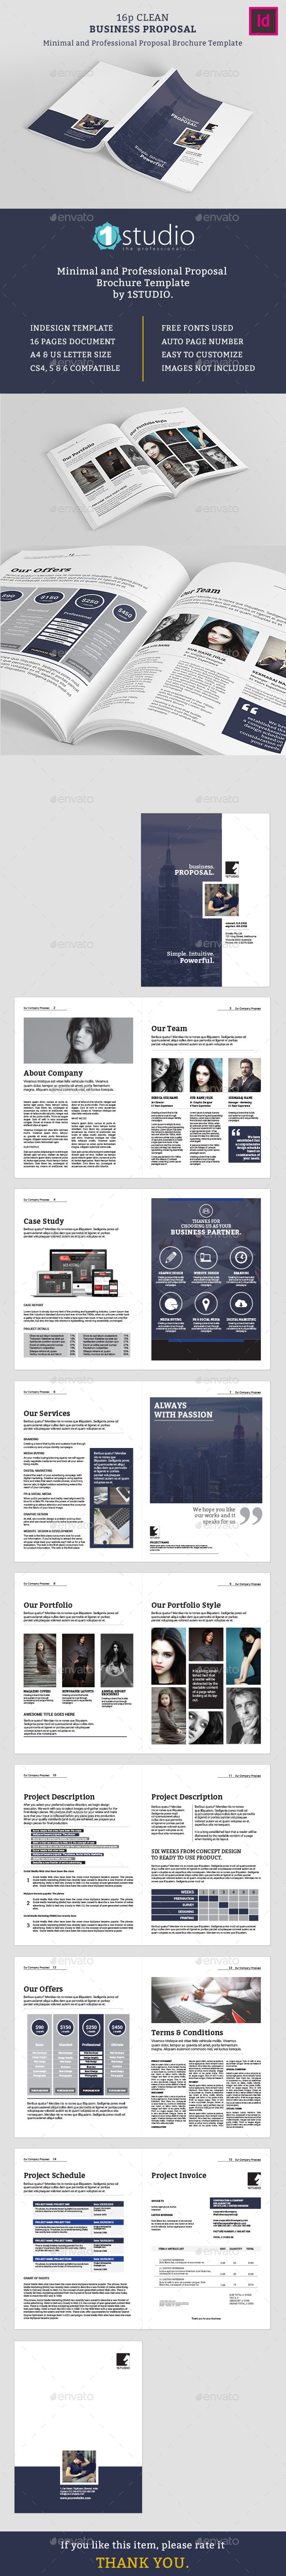 Clean Proposal and Brochure Template - Proposals & Invoices Stationery